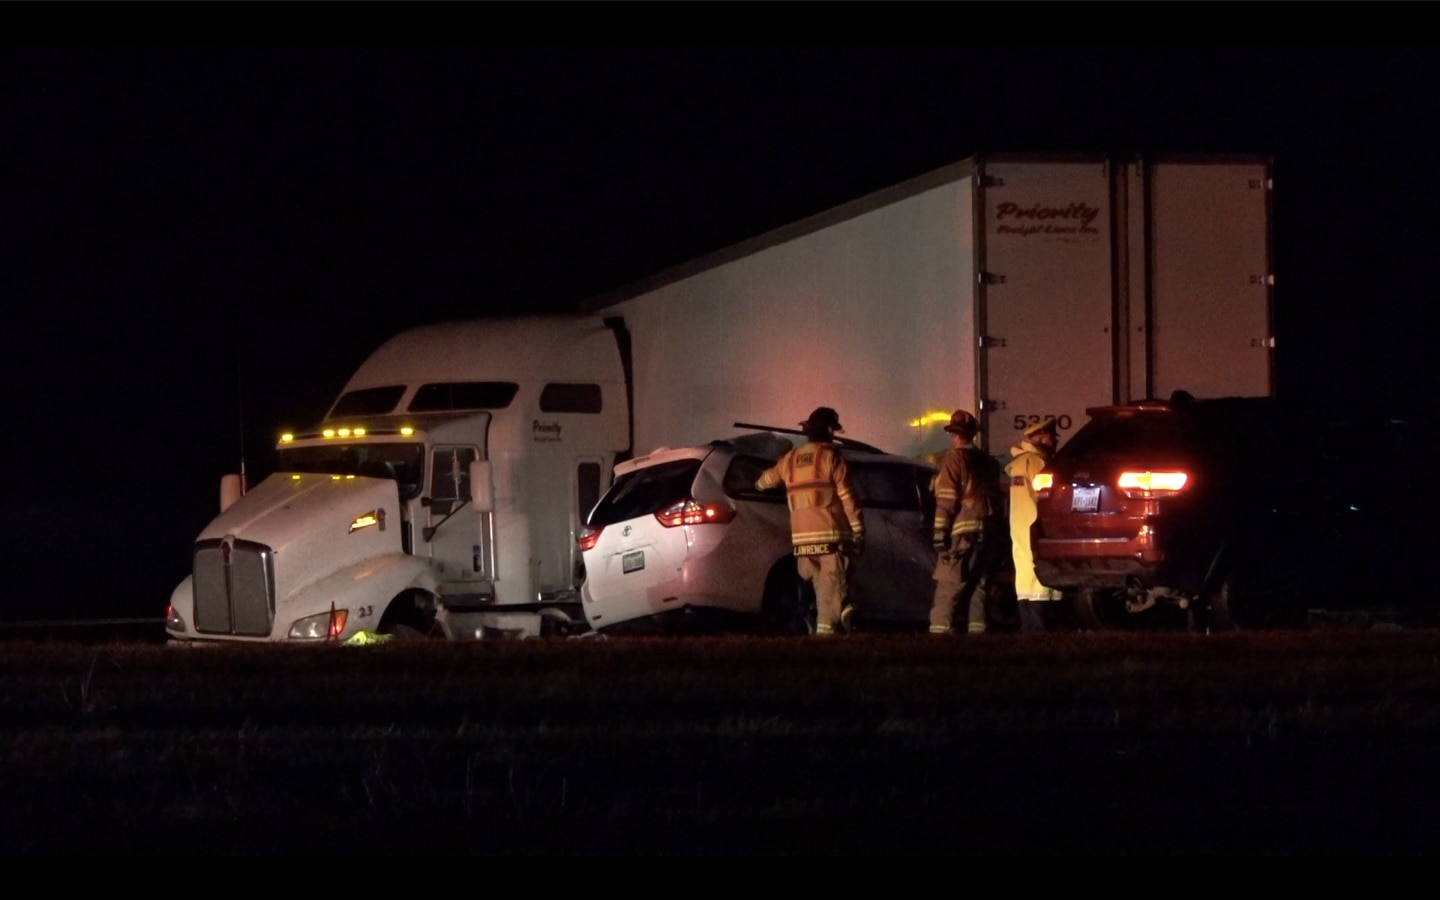 One person was killed and seven others were injured when a minivan slammed into a tractor-trailer that had jackknifed early Monday on Interstate 20 in Willow Park, west of Fort Worth.